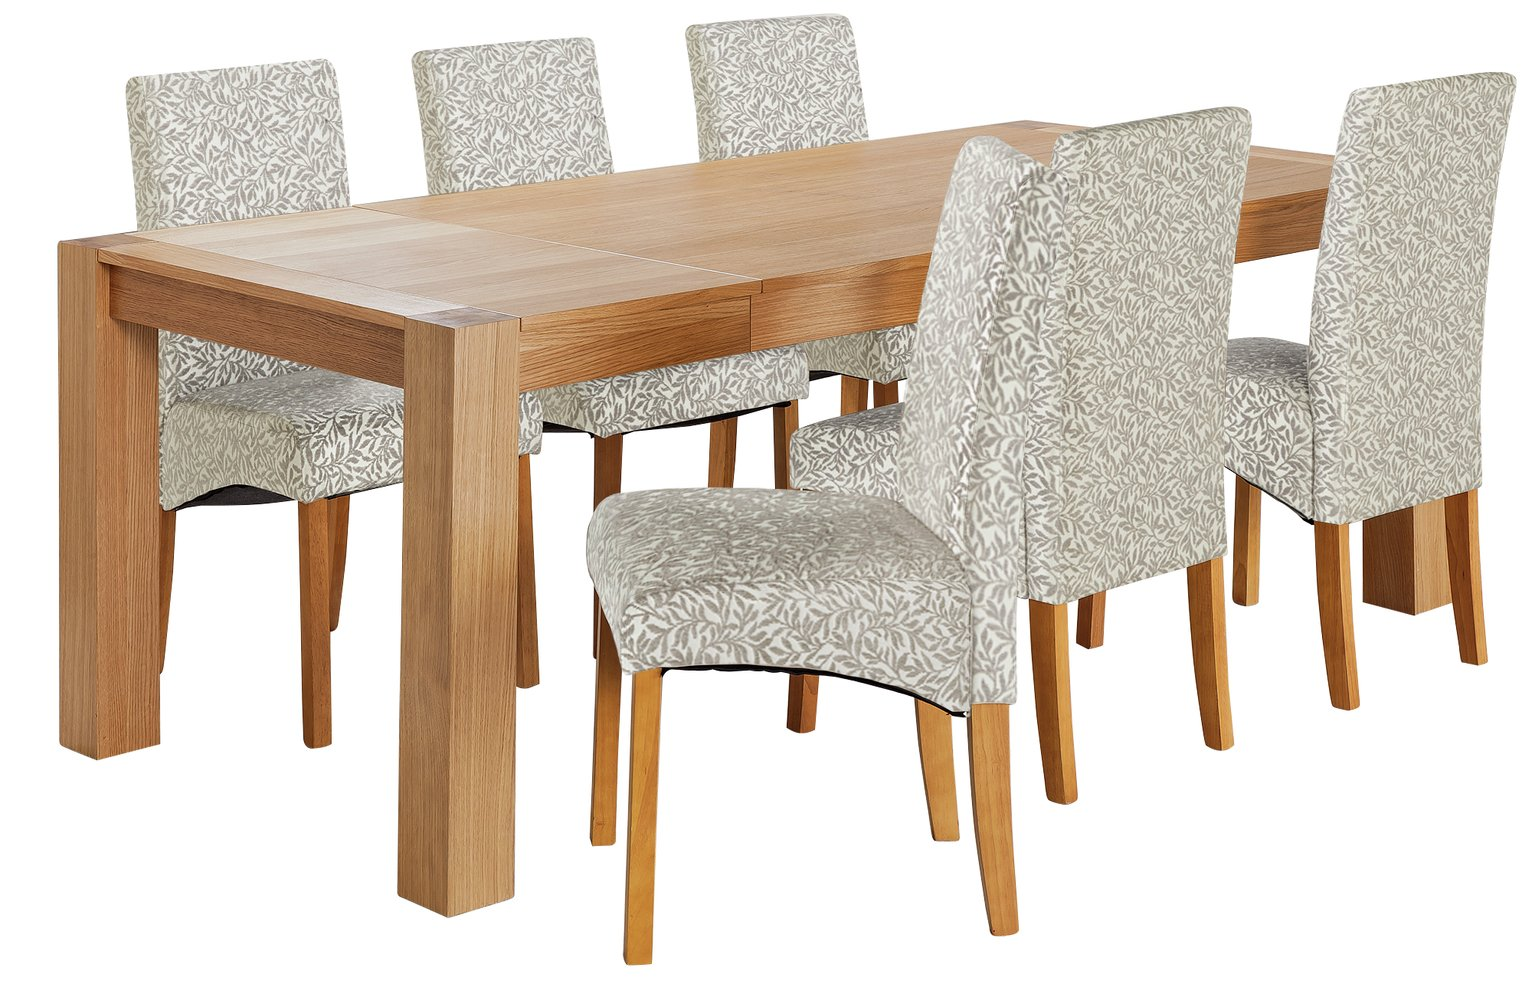 Argos Home Alston Oak Veneer Table & 6 Chairs - Floral